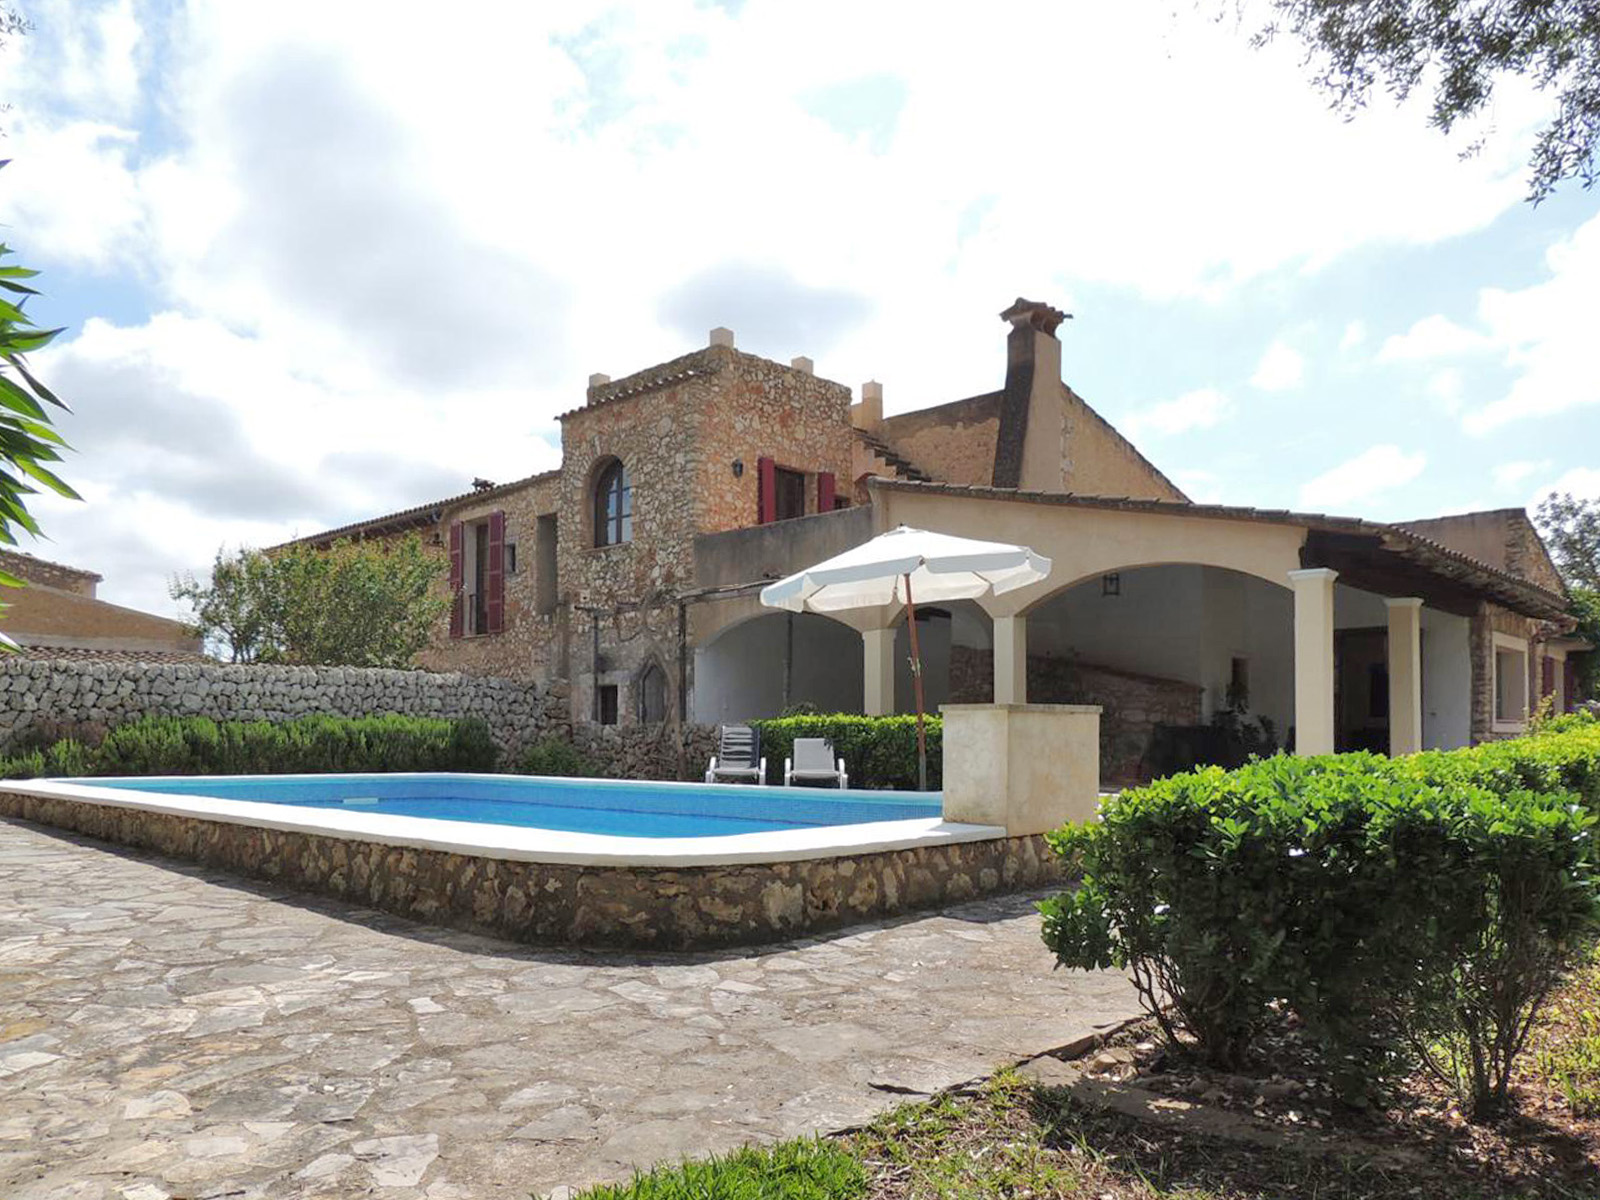 GRAND STONEFINCA WITH POOL AND GARDEN IN FELANITX